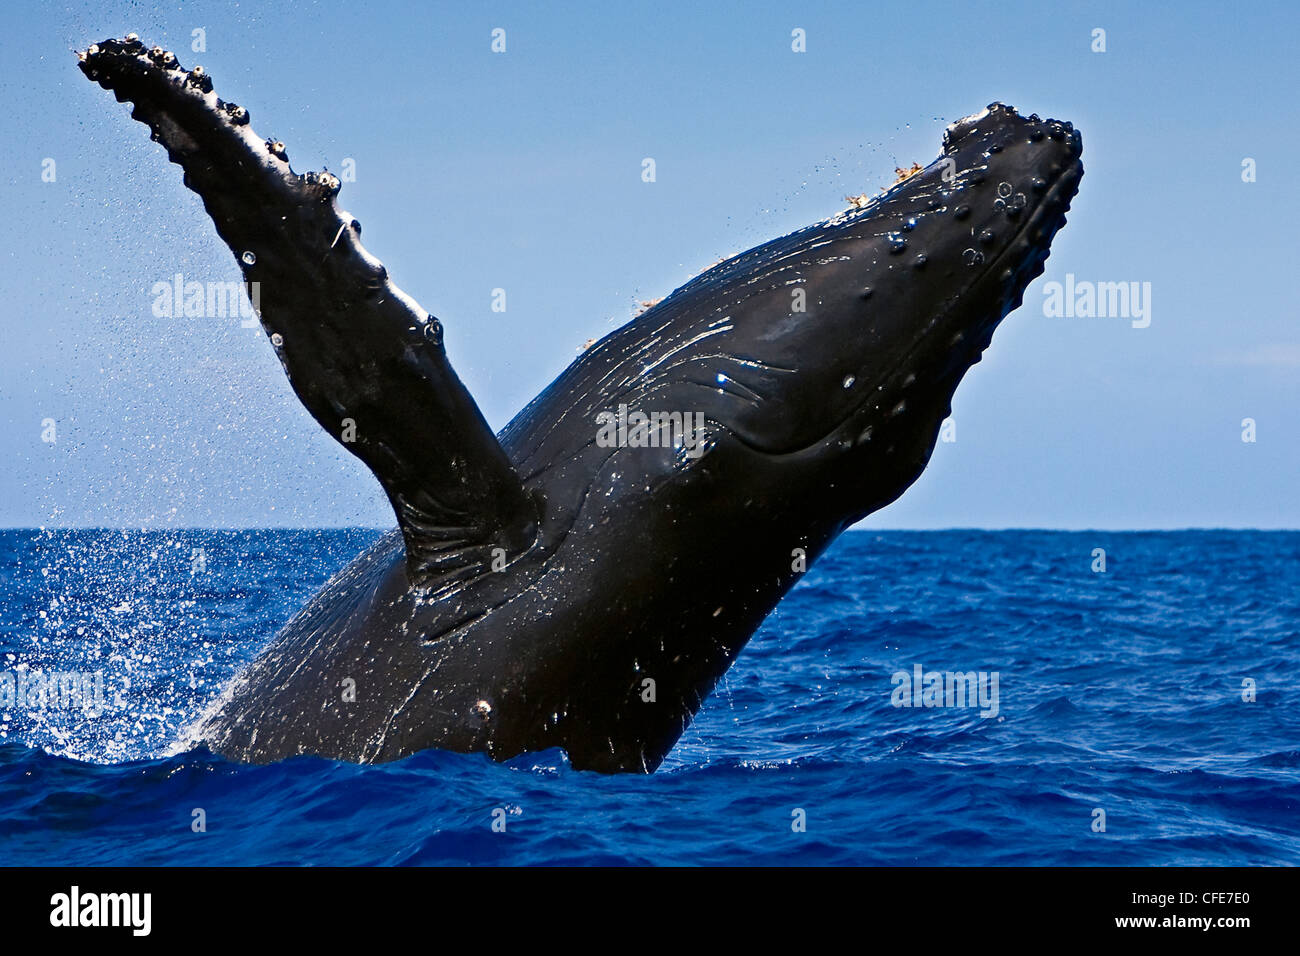 Breaching humpback whale - Stock Image